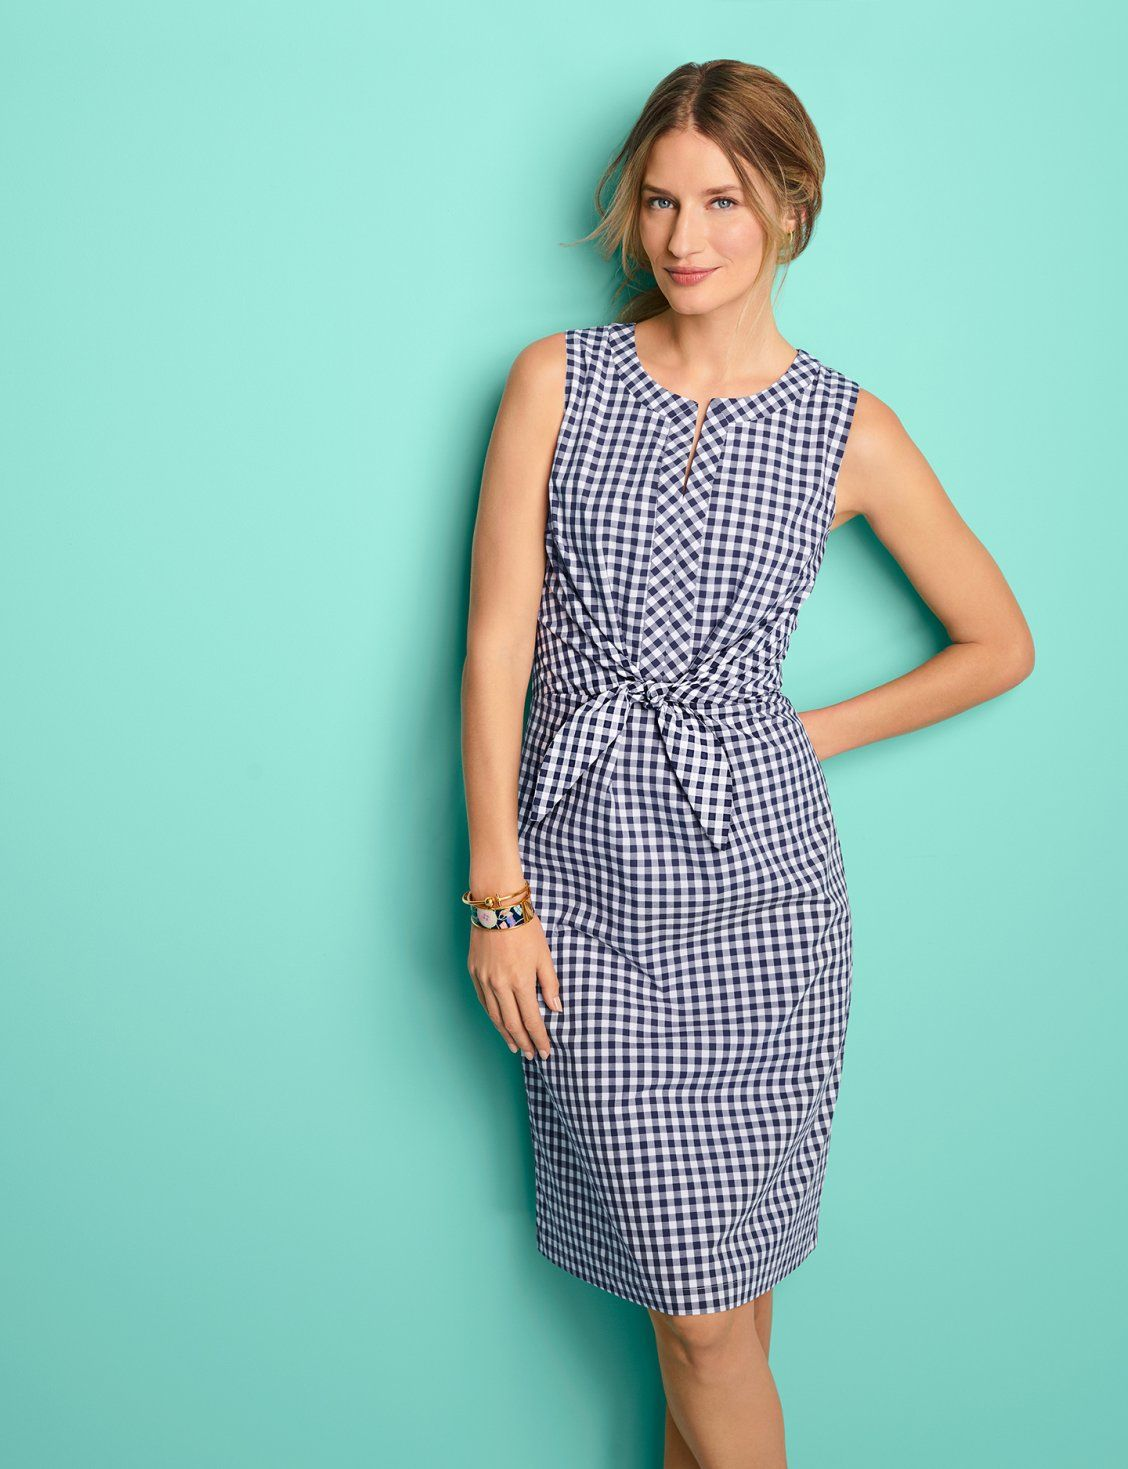 Tie Front Gingham A Line Dress Perfect For Weekend Breaks Or Long Escapes Talbots Resort Swim Gingham Fashion A Line Dress Talbots Dress [ 1469 x 1128 Pixel ]